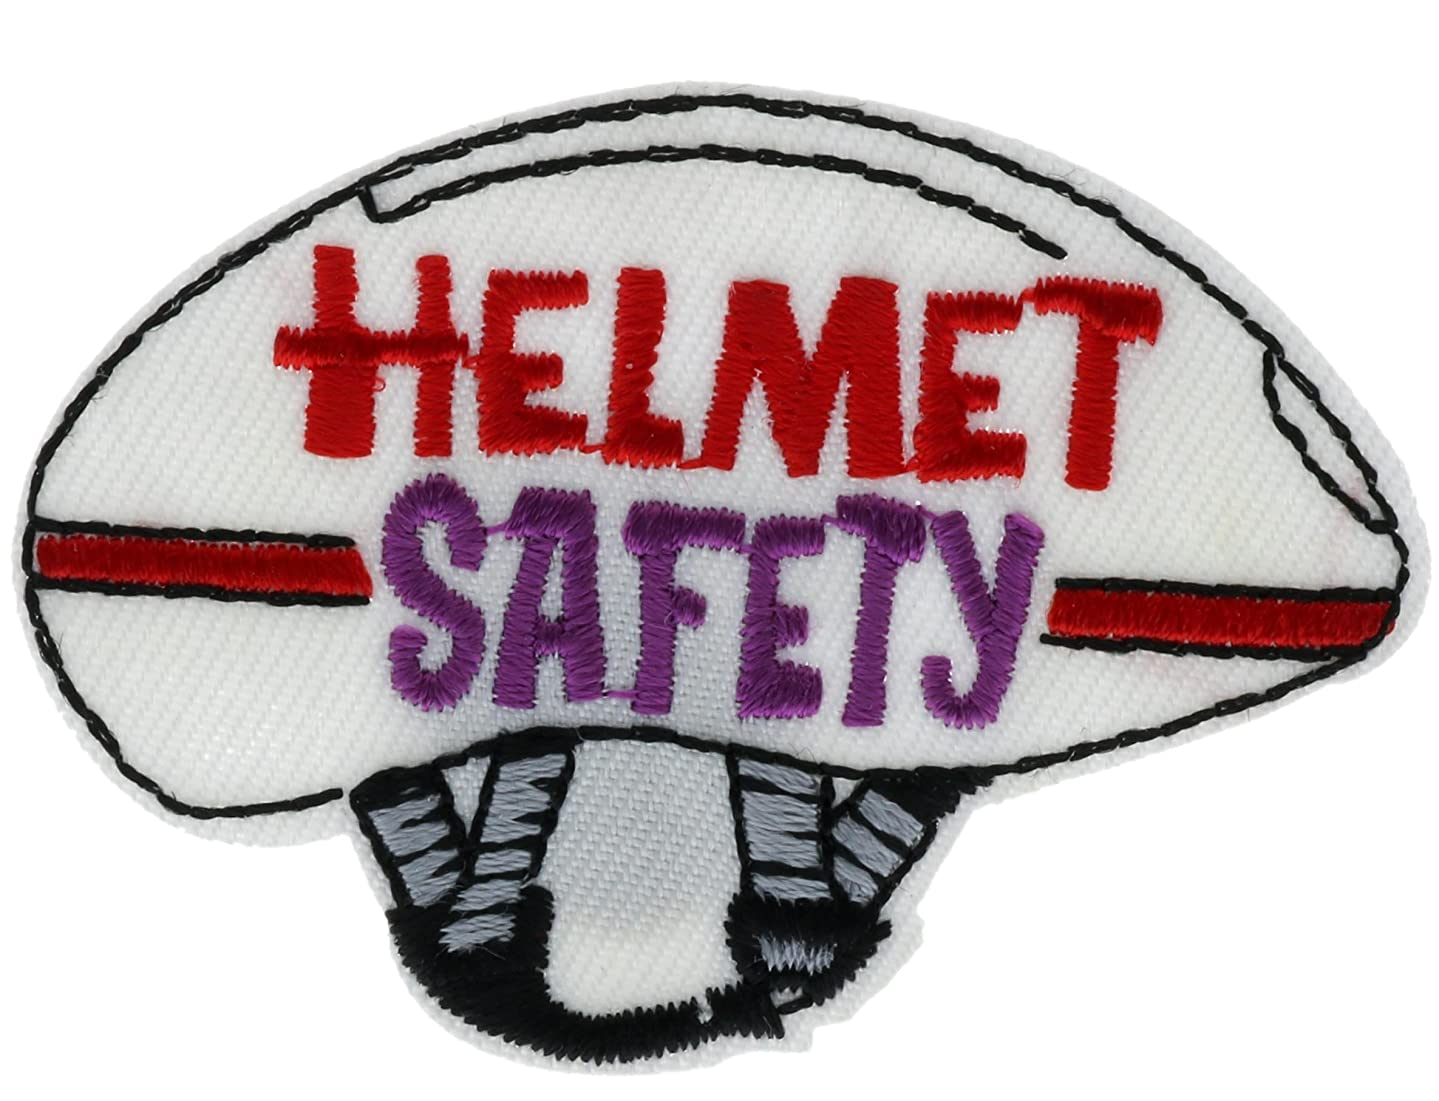 Helmet Safety Bike Skateboard Embroidered Patch 2 inch AVA3353